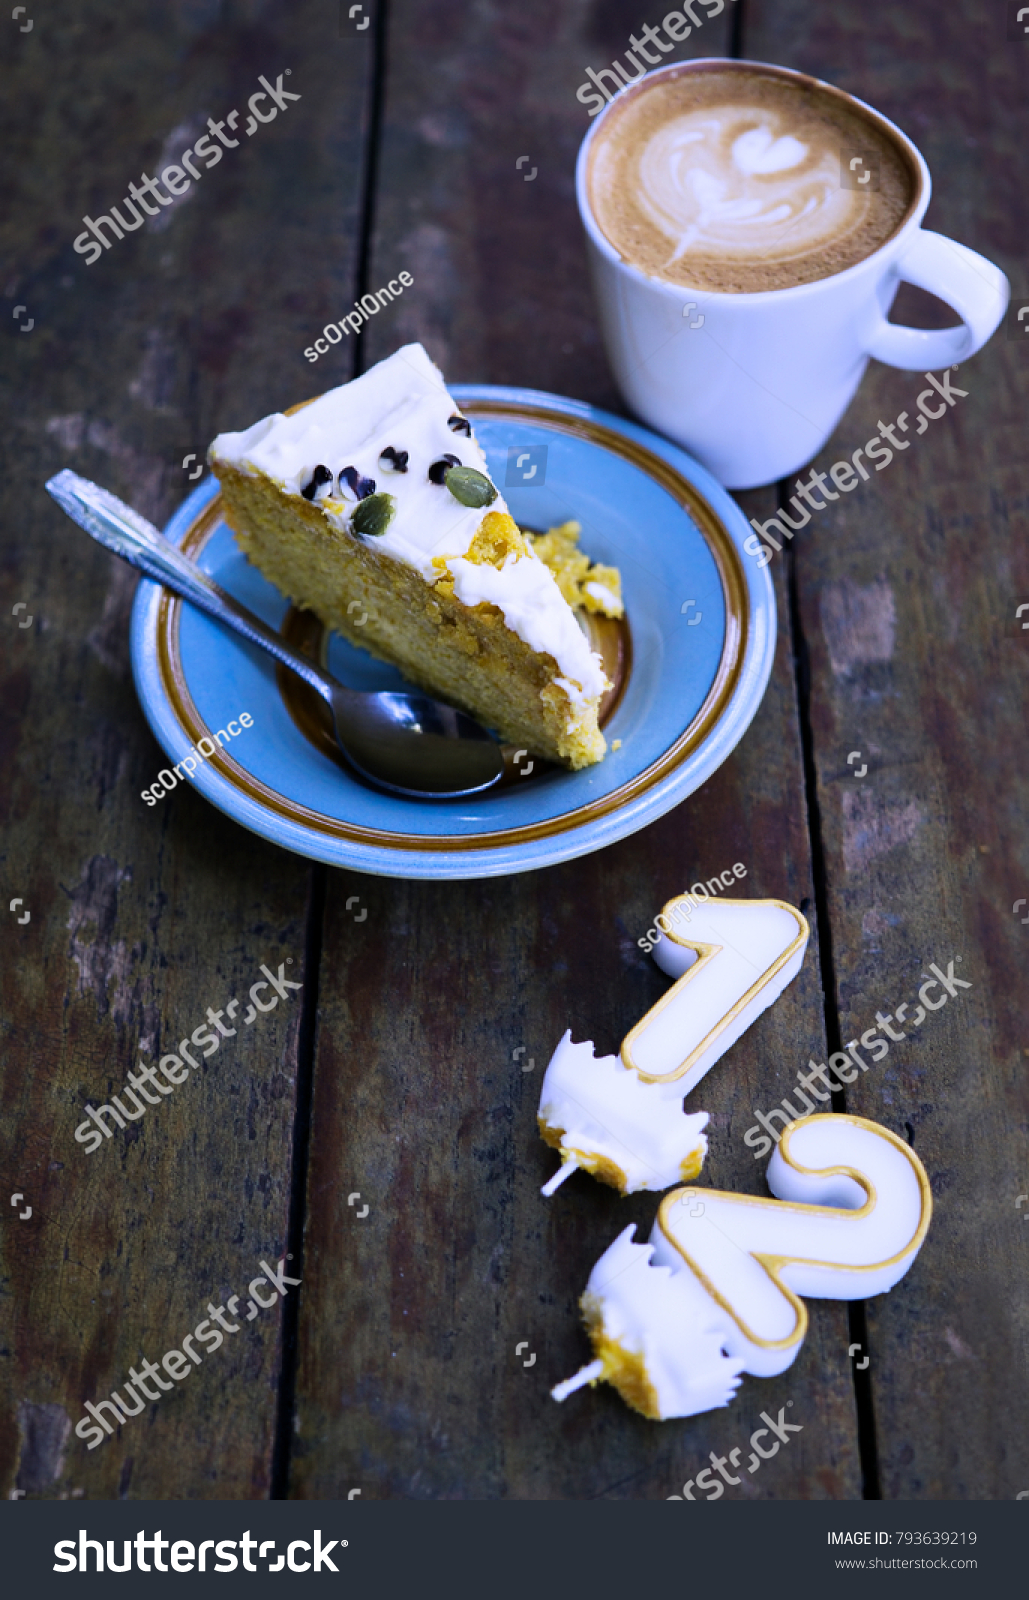 Slice Of Birthday Cake Witn Candle Numbers One And Two With Cup Latte On Wooden